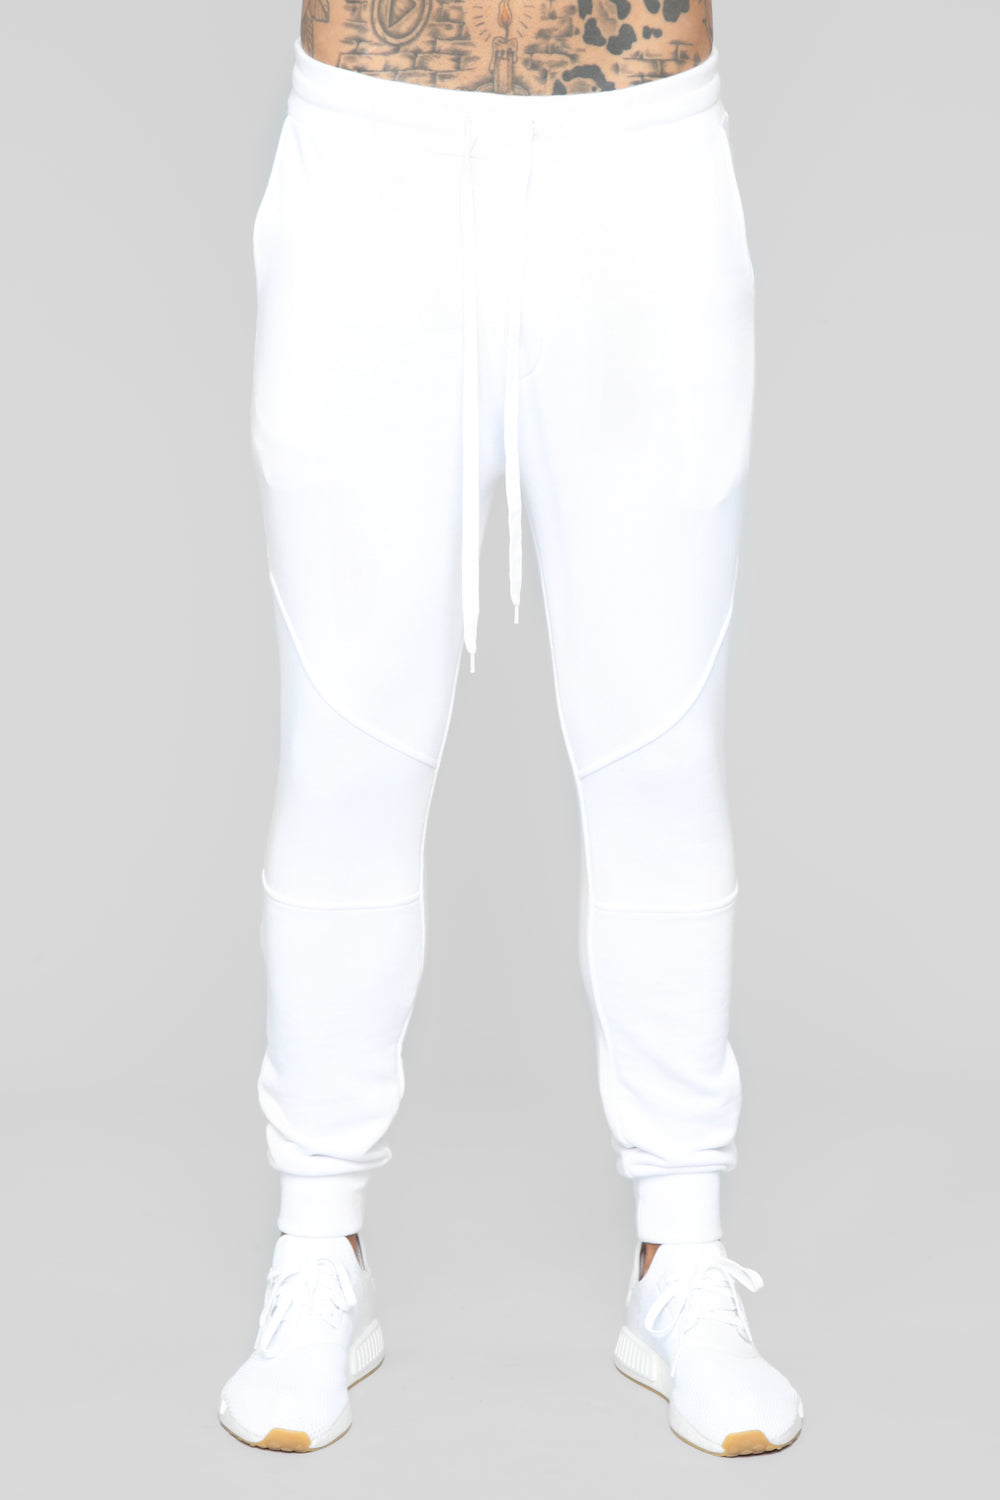 Estate Jogger Pants - White